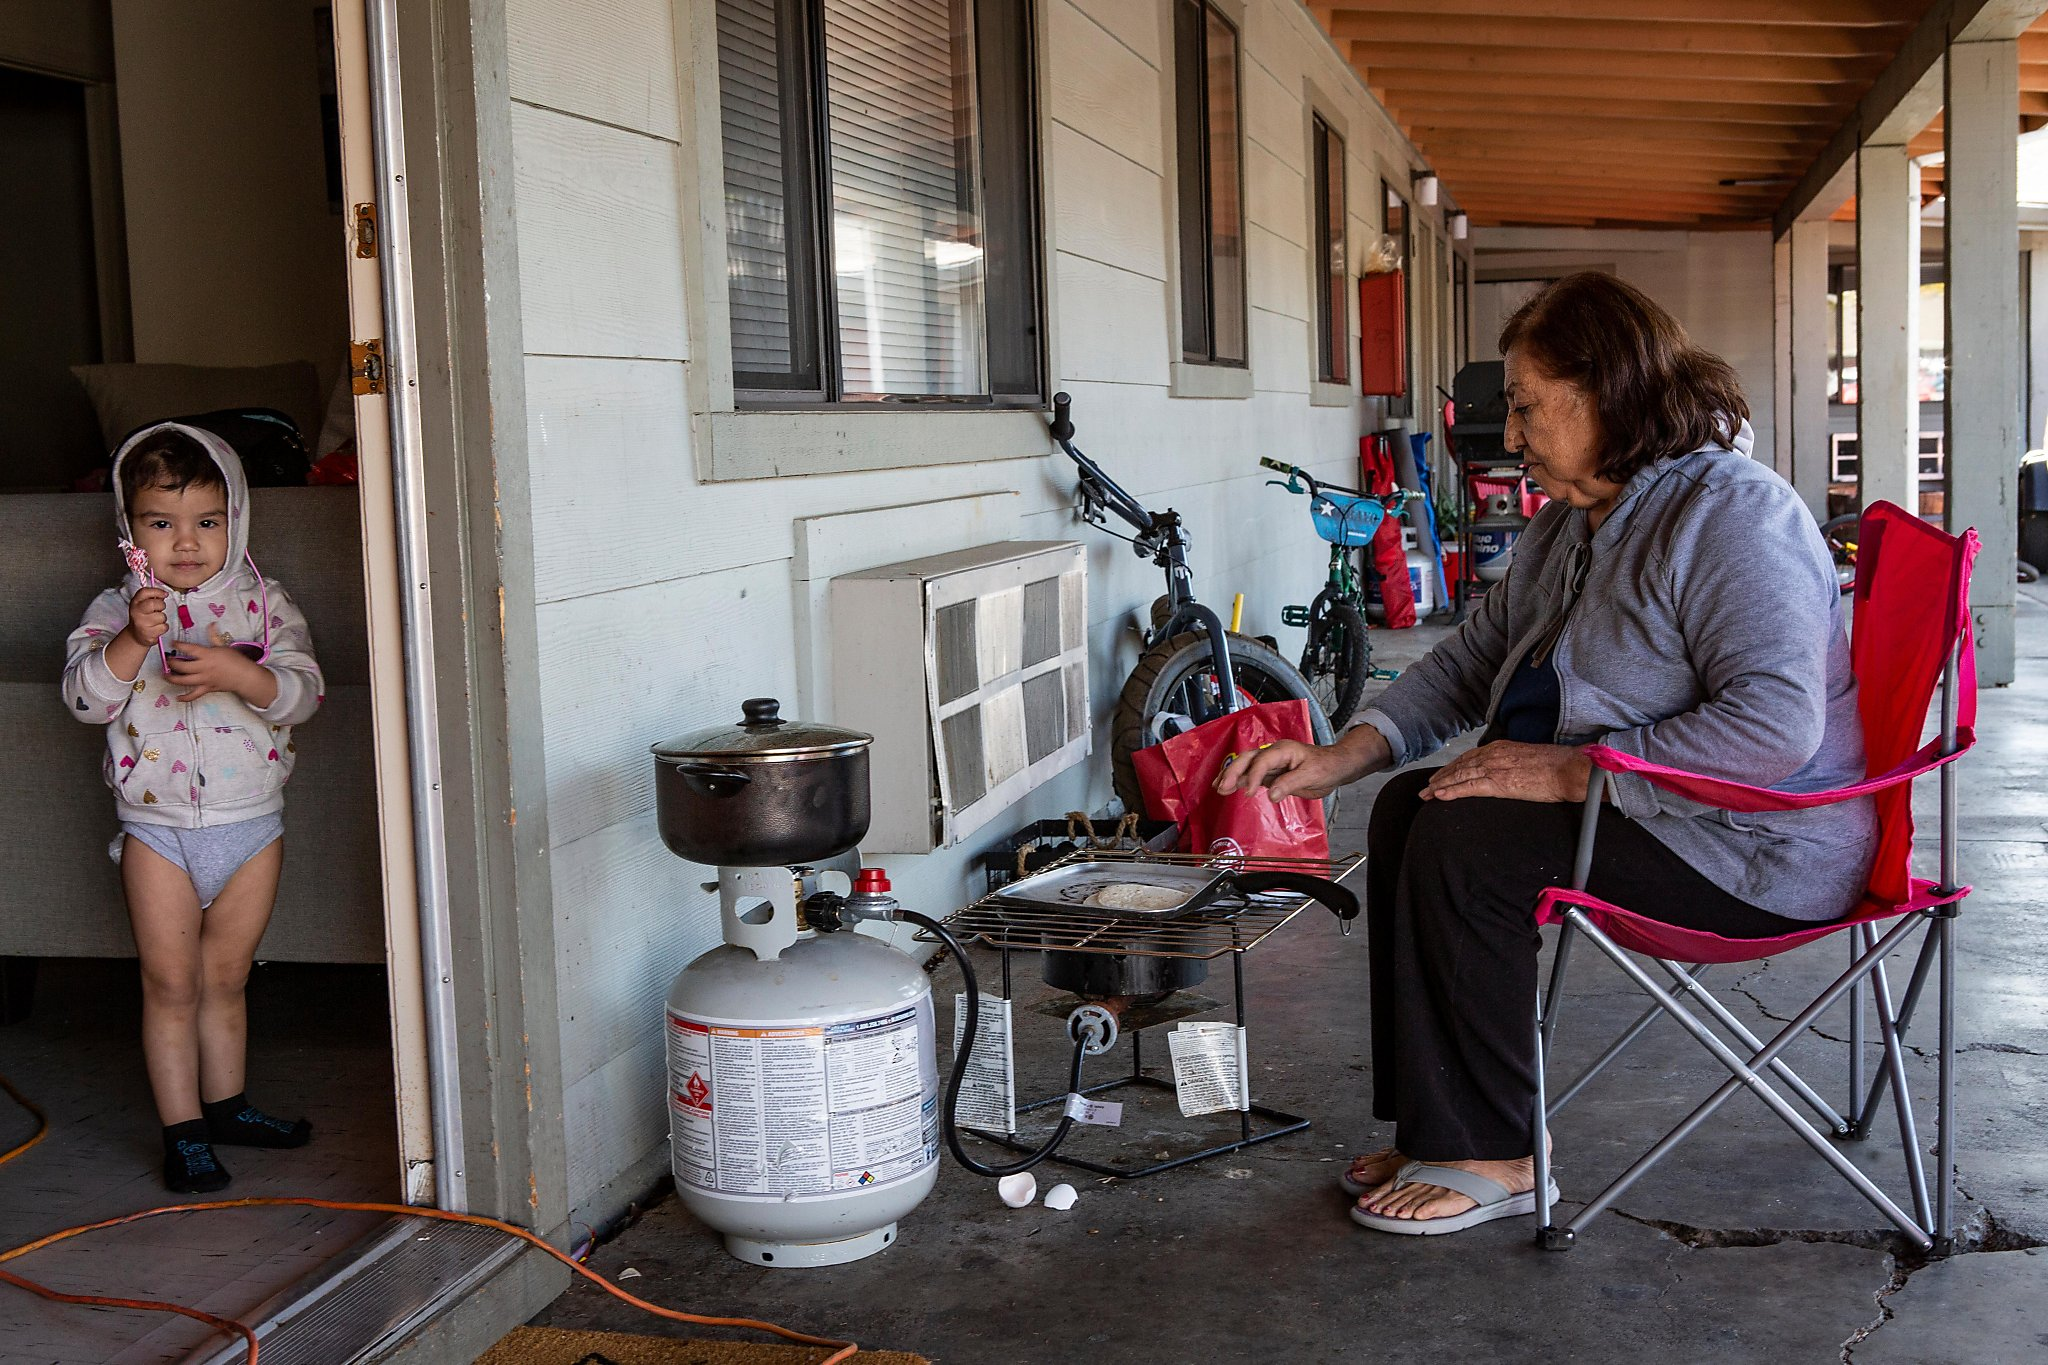 In Mendocino County, they see the light — after five days without